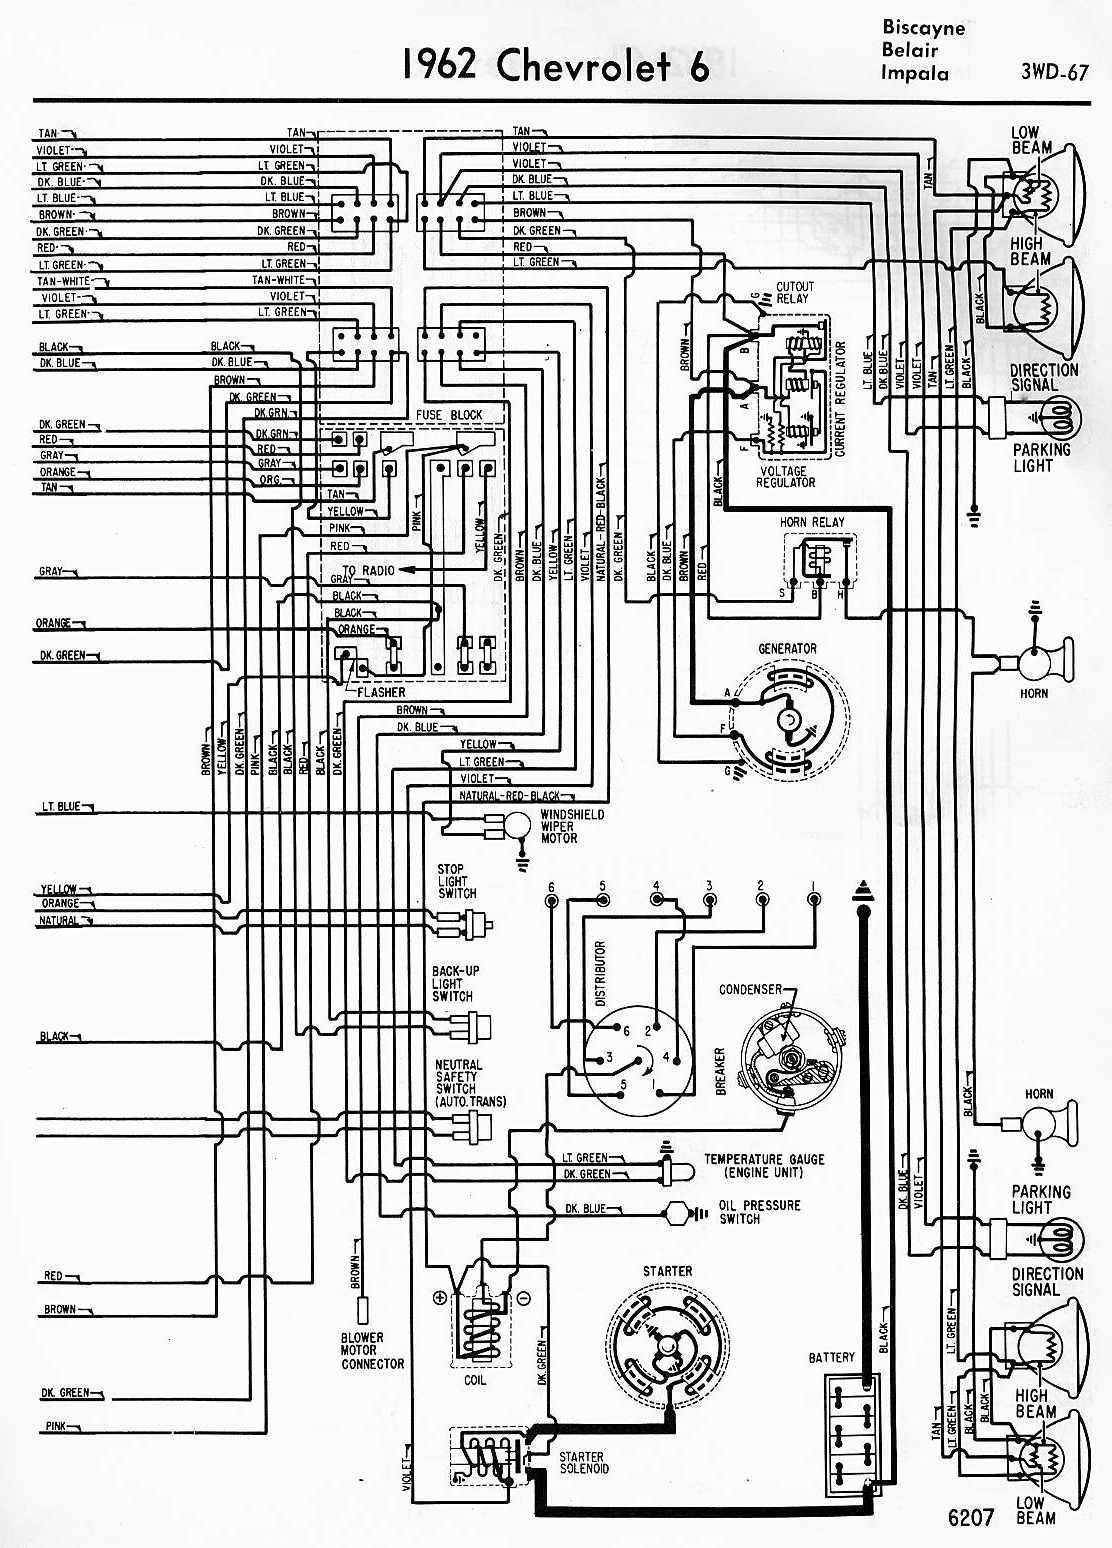 1962 cadillac headlight switch wiring wiring diagram data today 1962 gm headlight switch wiring wiring diagrams [ 1112 x 1548 Pixel ]